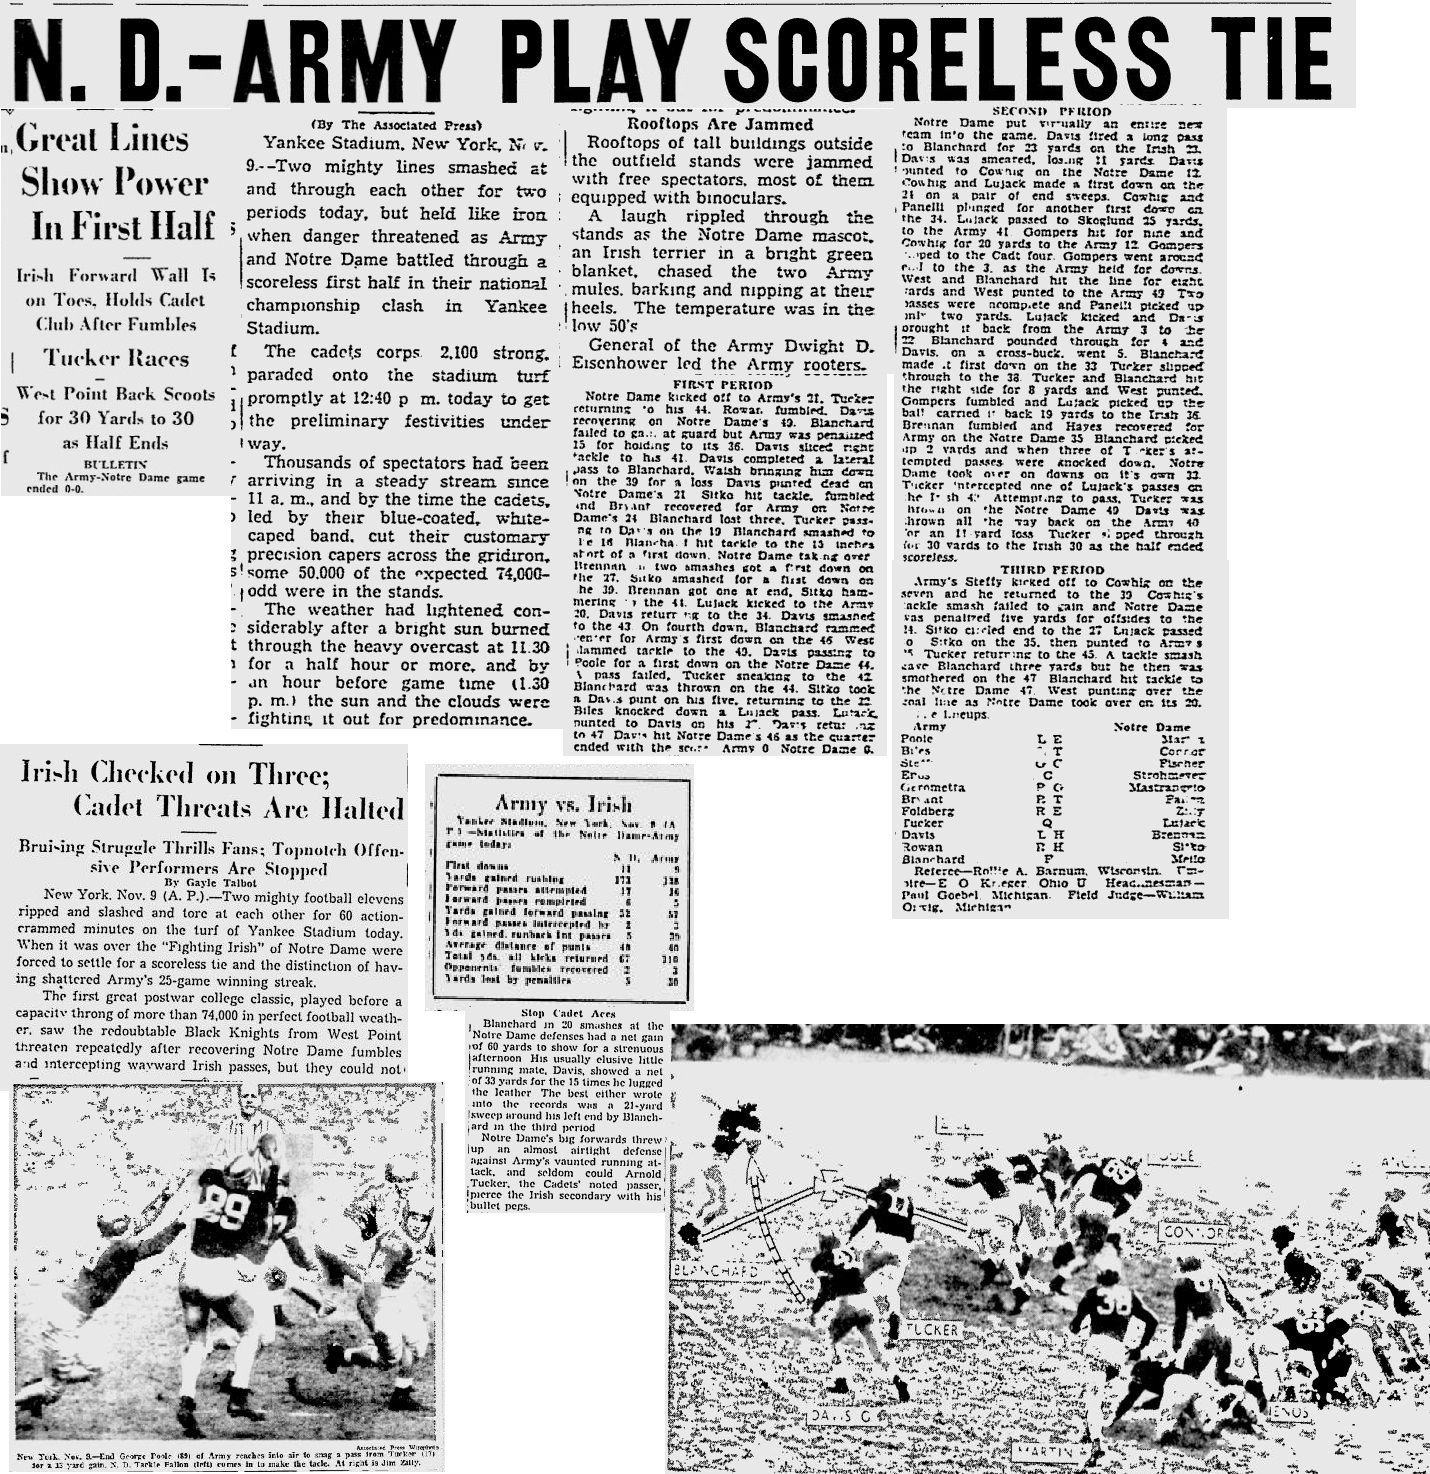 armyfb_1946_vsnotredame_youngstownvindicator_nov101946